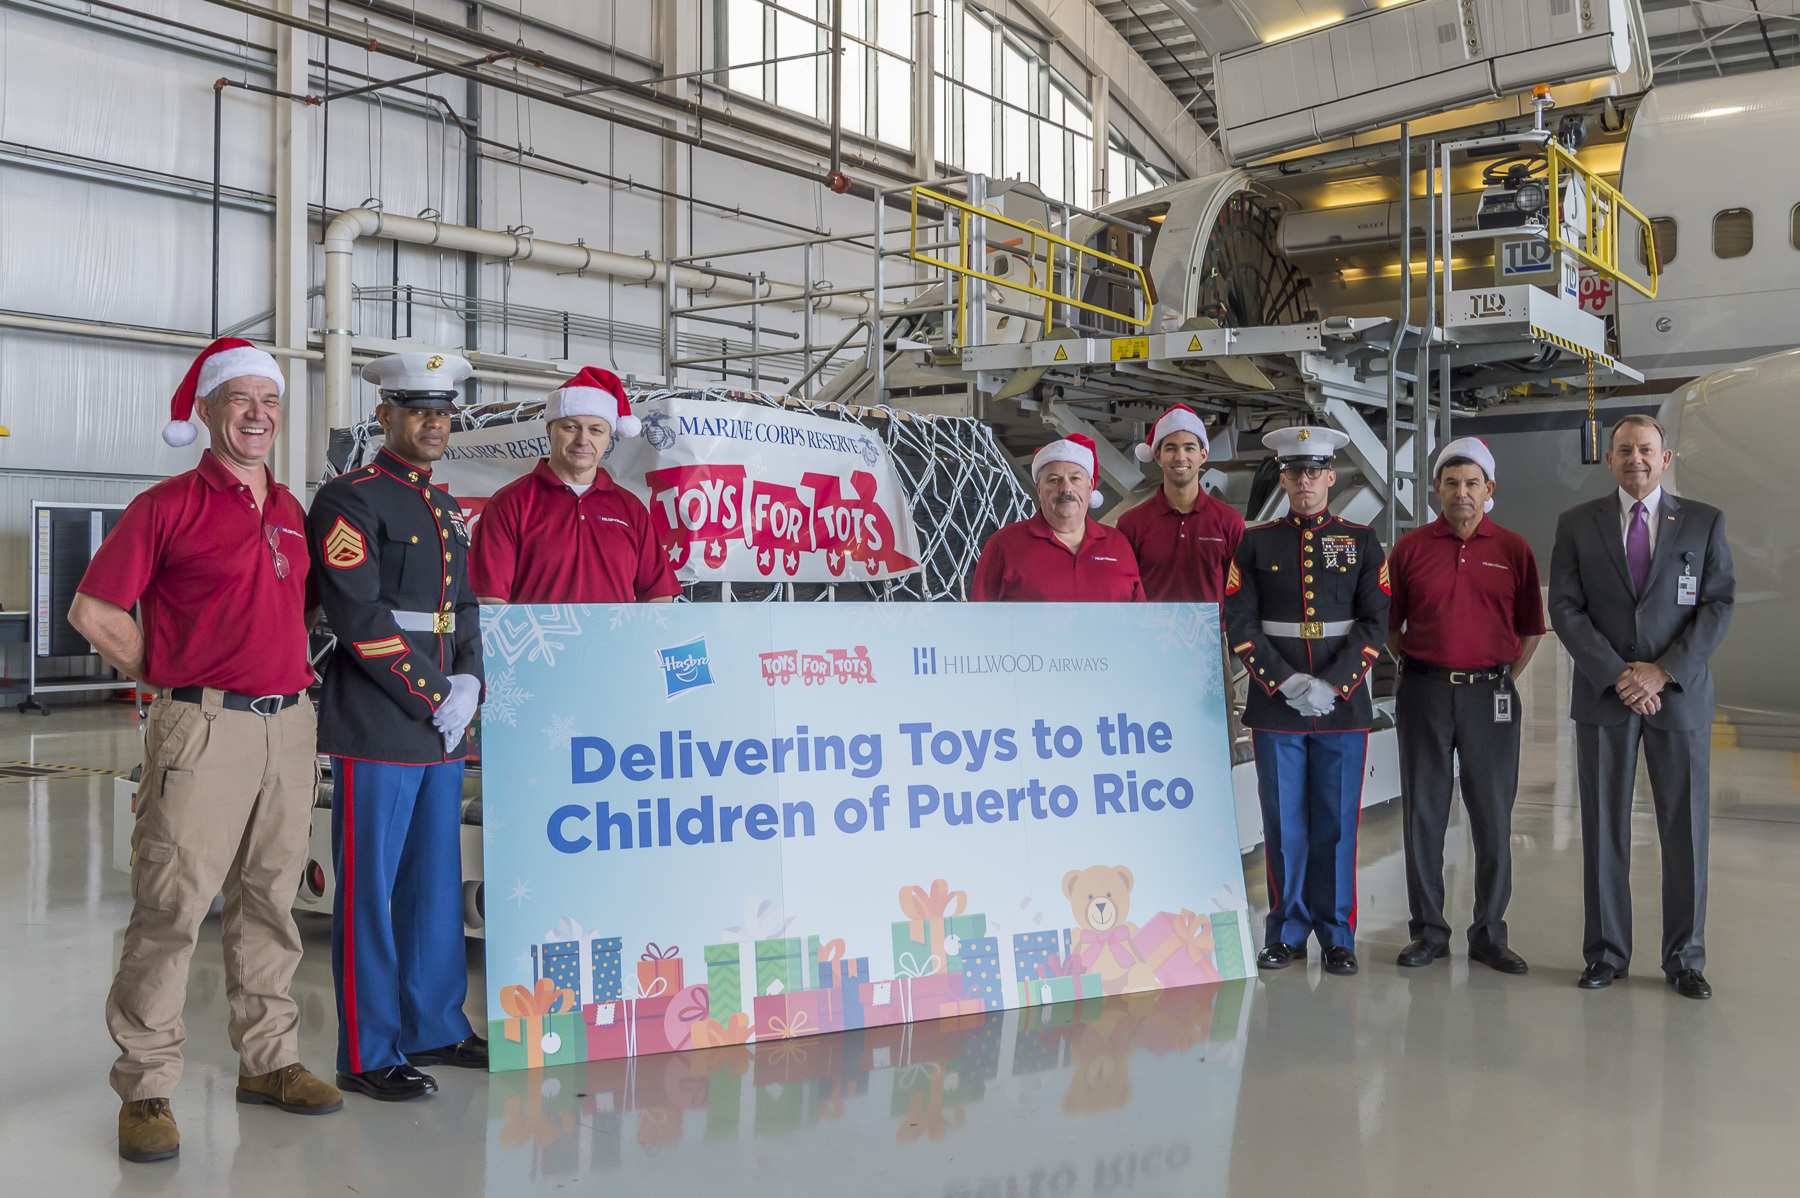 Companies Join Forces With Toys For Tots To Make The Holidays